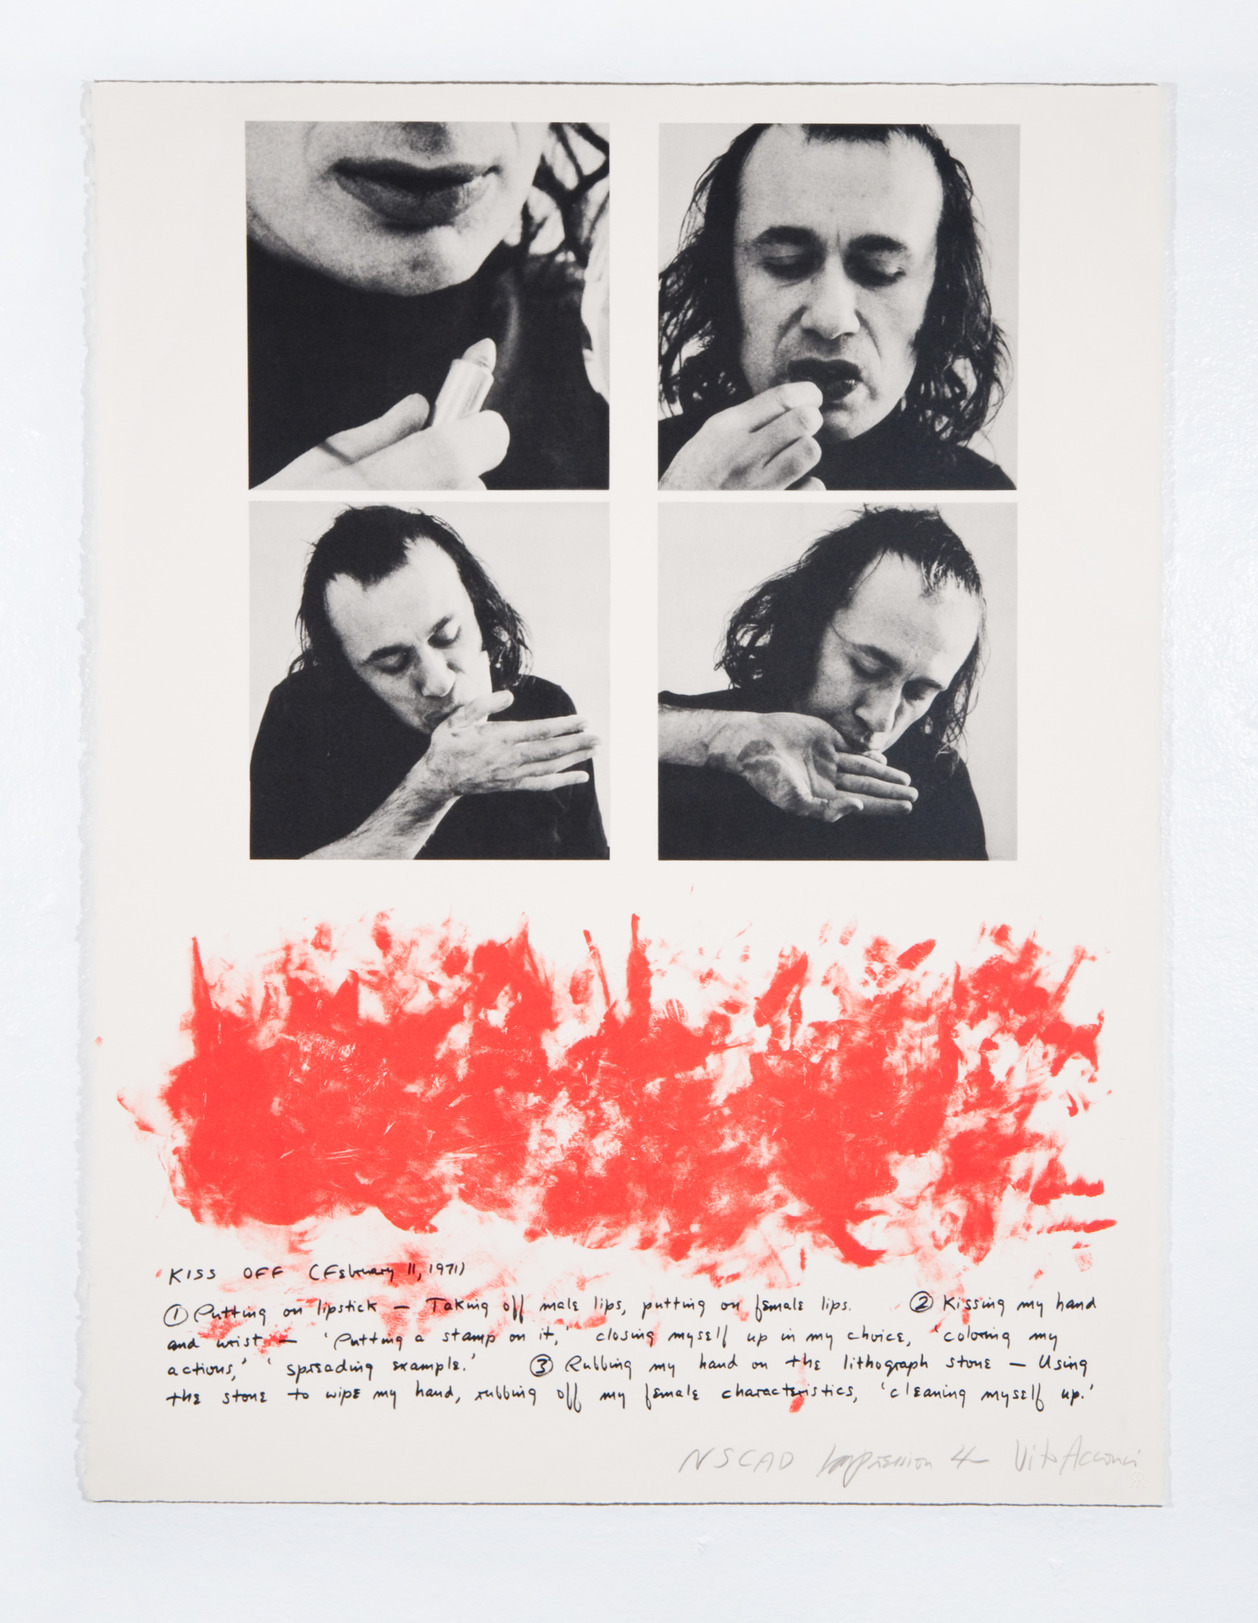 Vito Acconci, Kiss Off, 1971